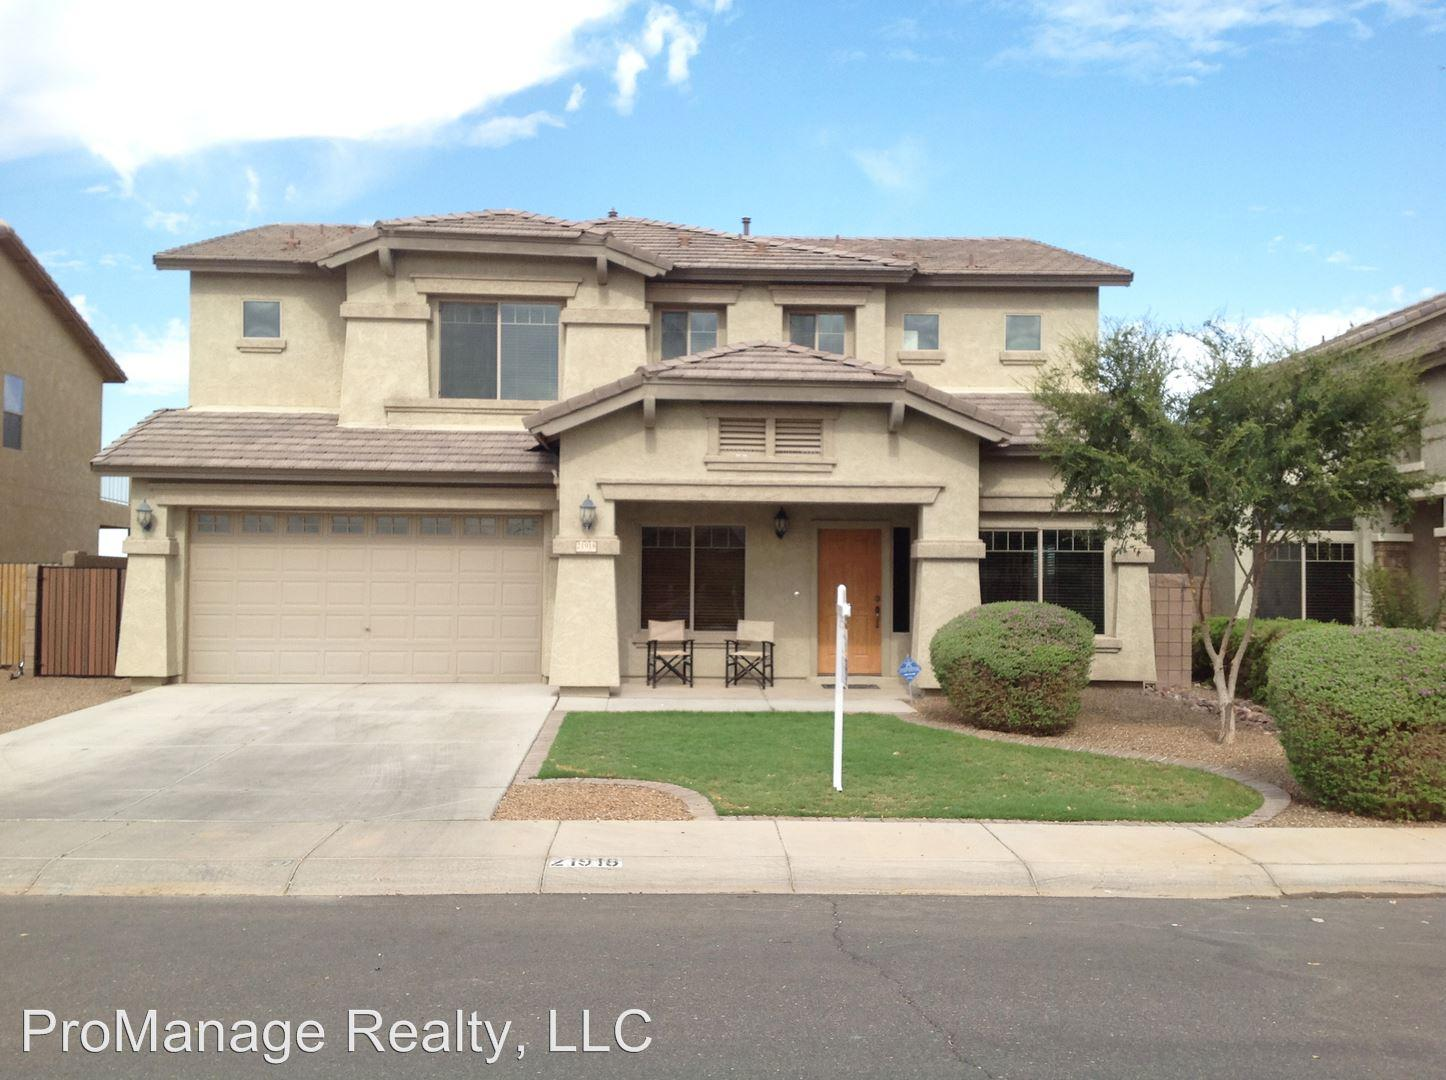 21918 N SUNSET DR photo #1